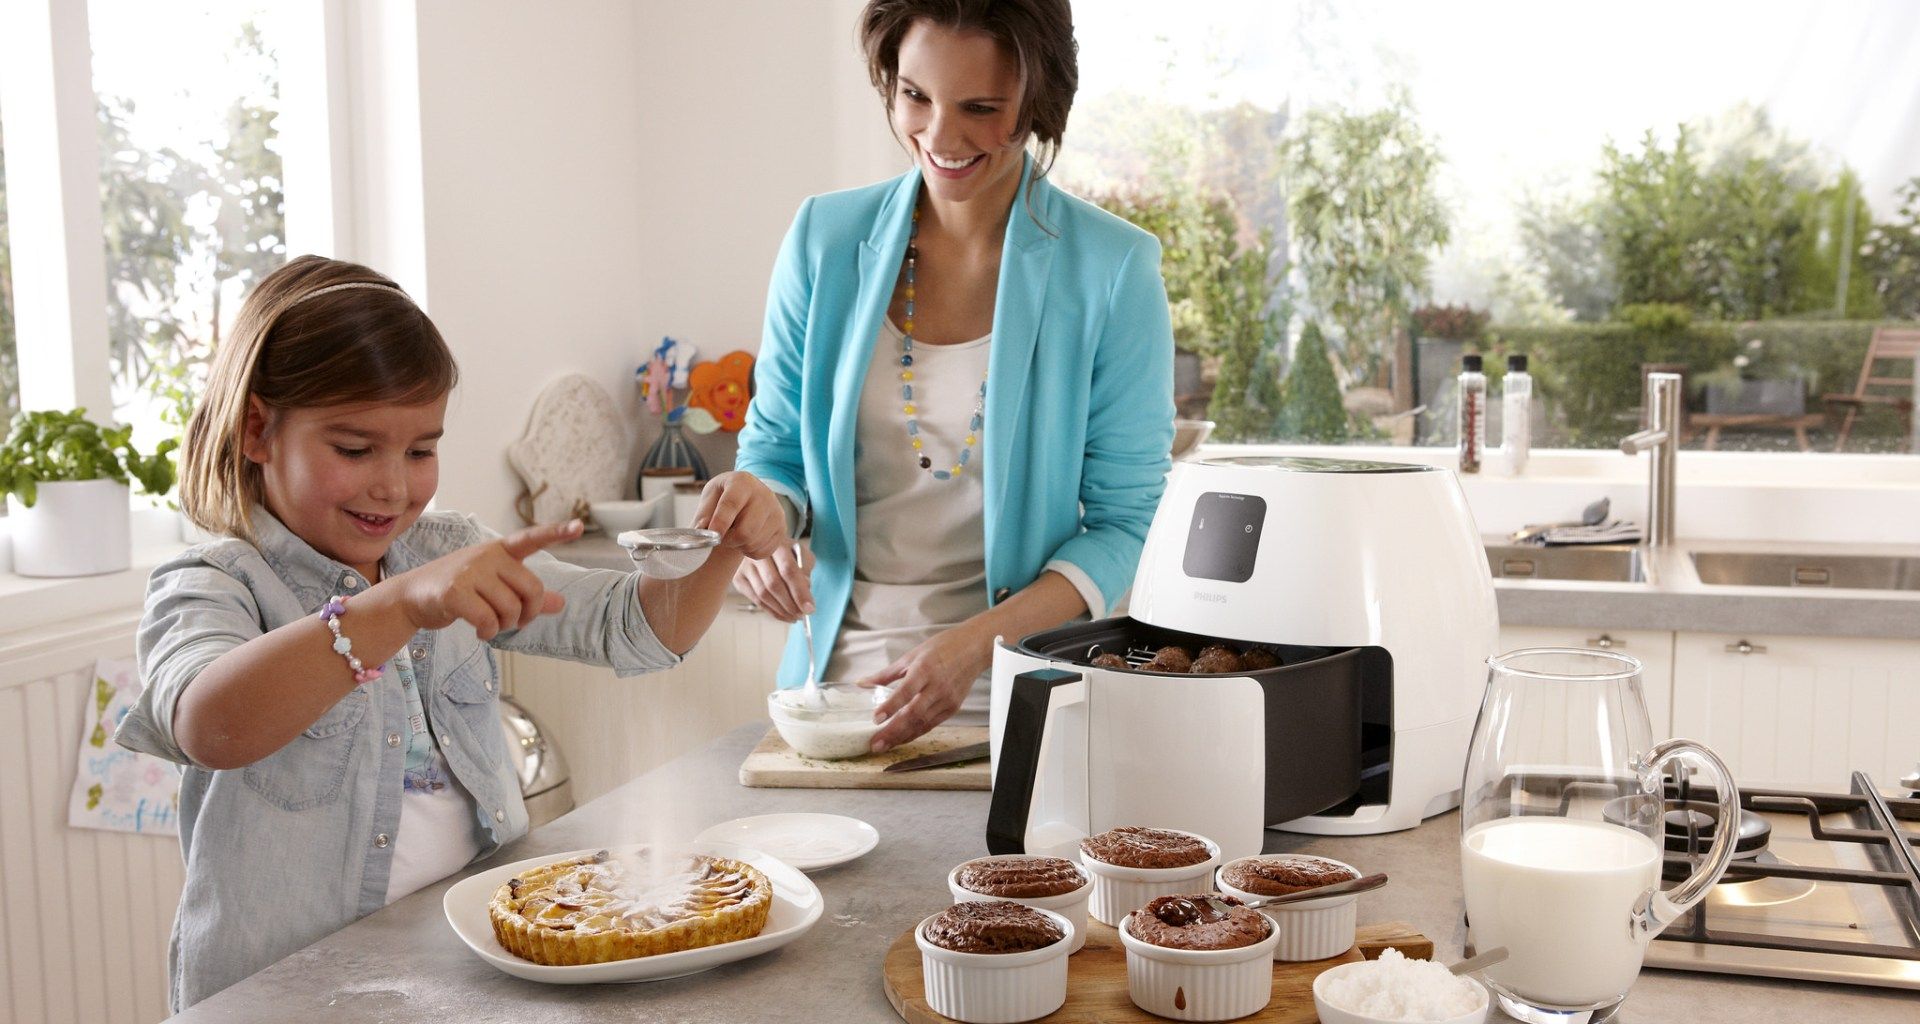 LXP - Lifexpe - philips kitchen ways to adopt healthy lifestyle secrets to develop healthy habits